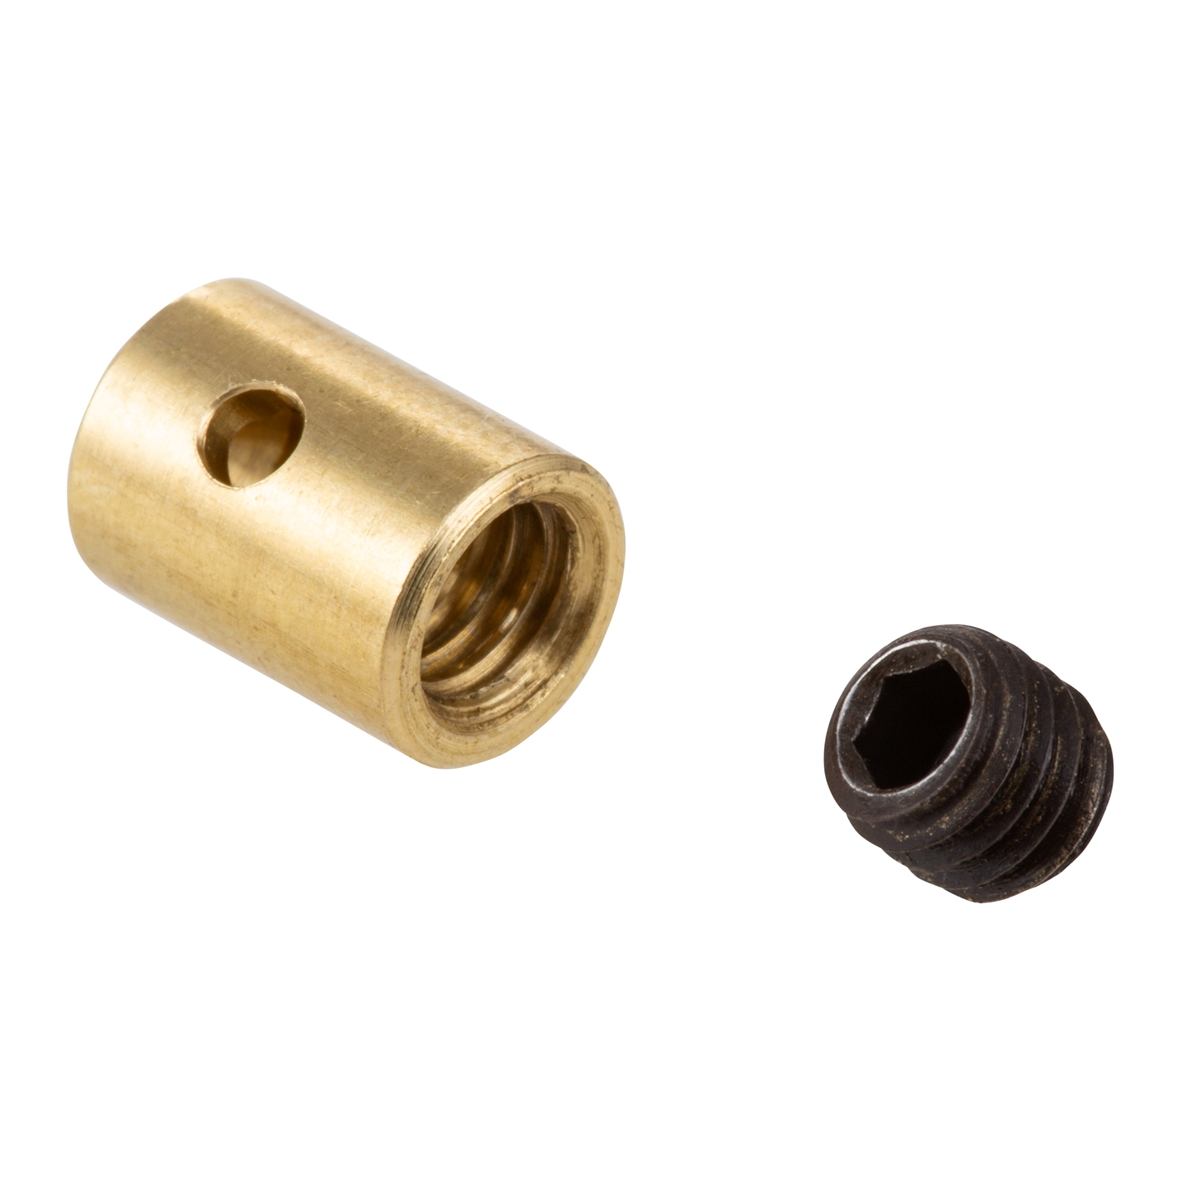 Product Image for 'Cable Nipple SIP throttle/gear cable (top), barrelTitle'